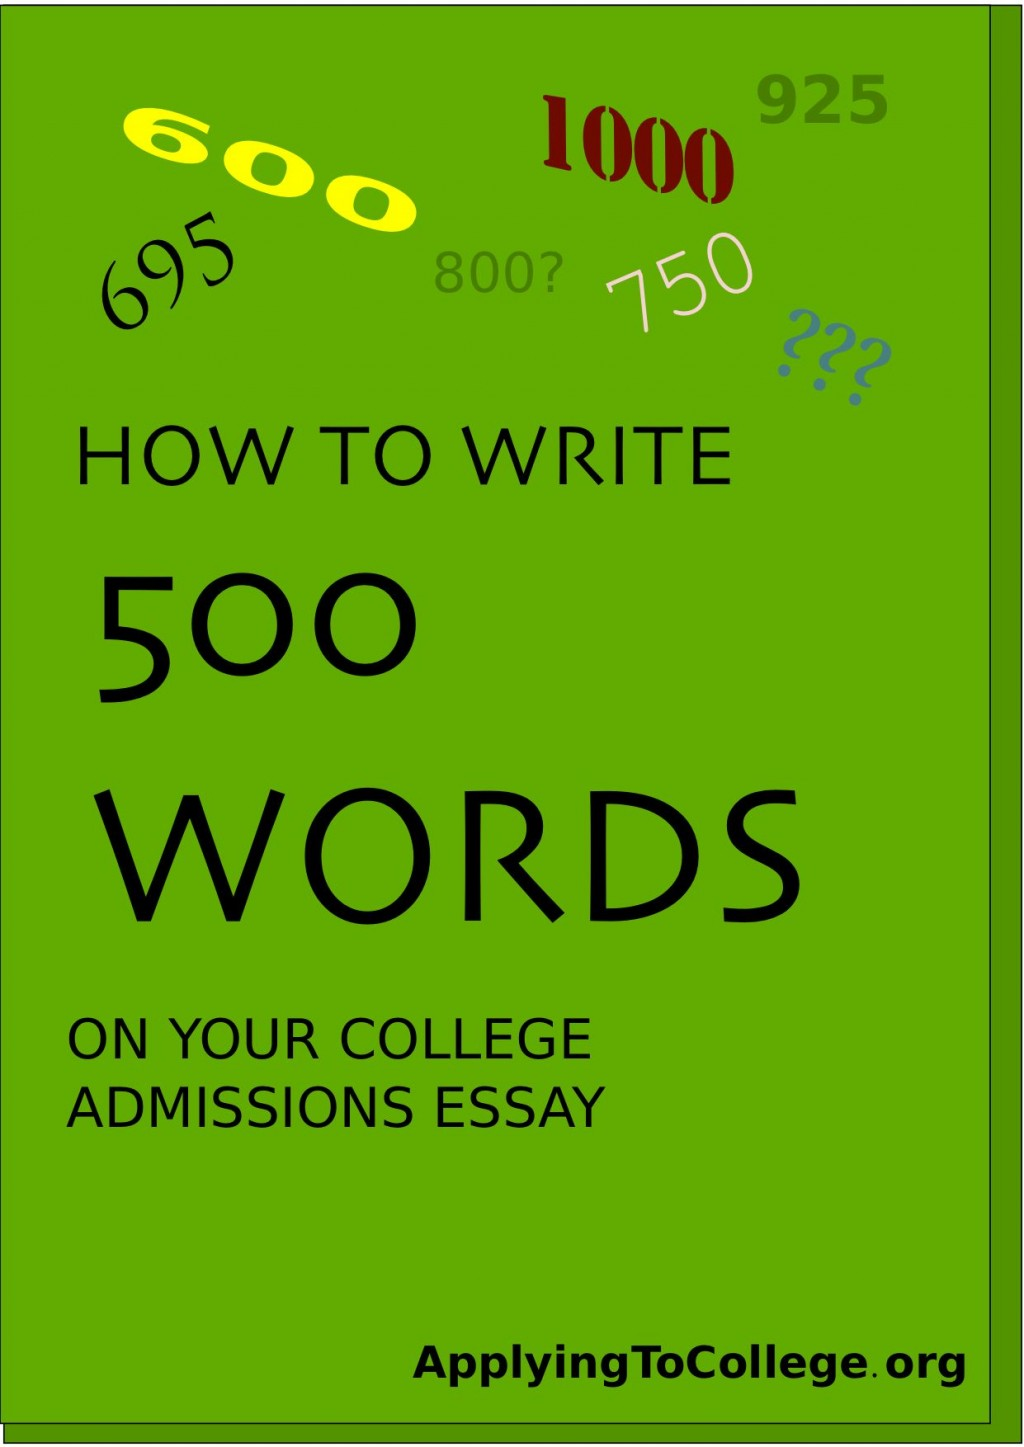 005 Essay Example College Word Impressive Limit Count Admission 2019 Large